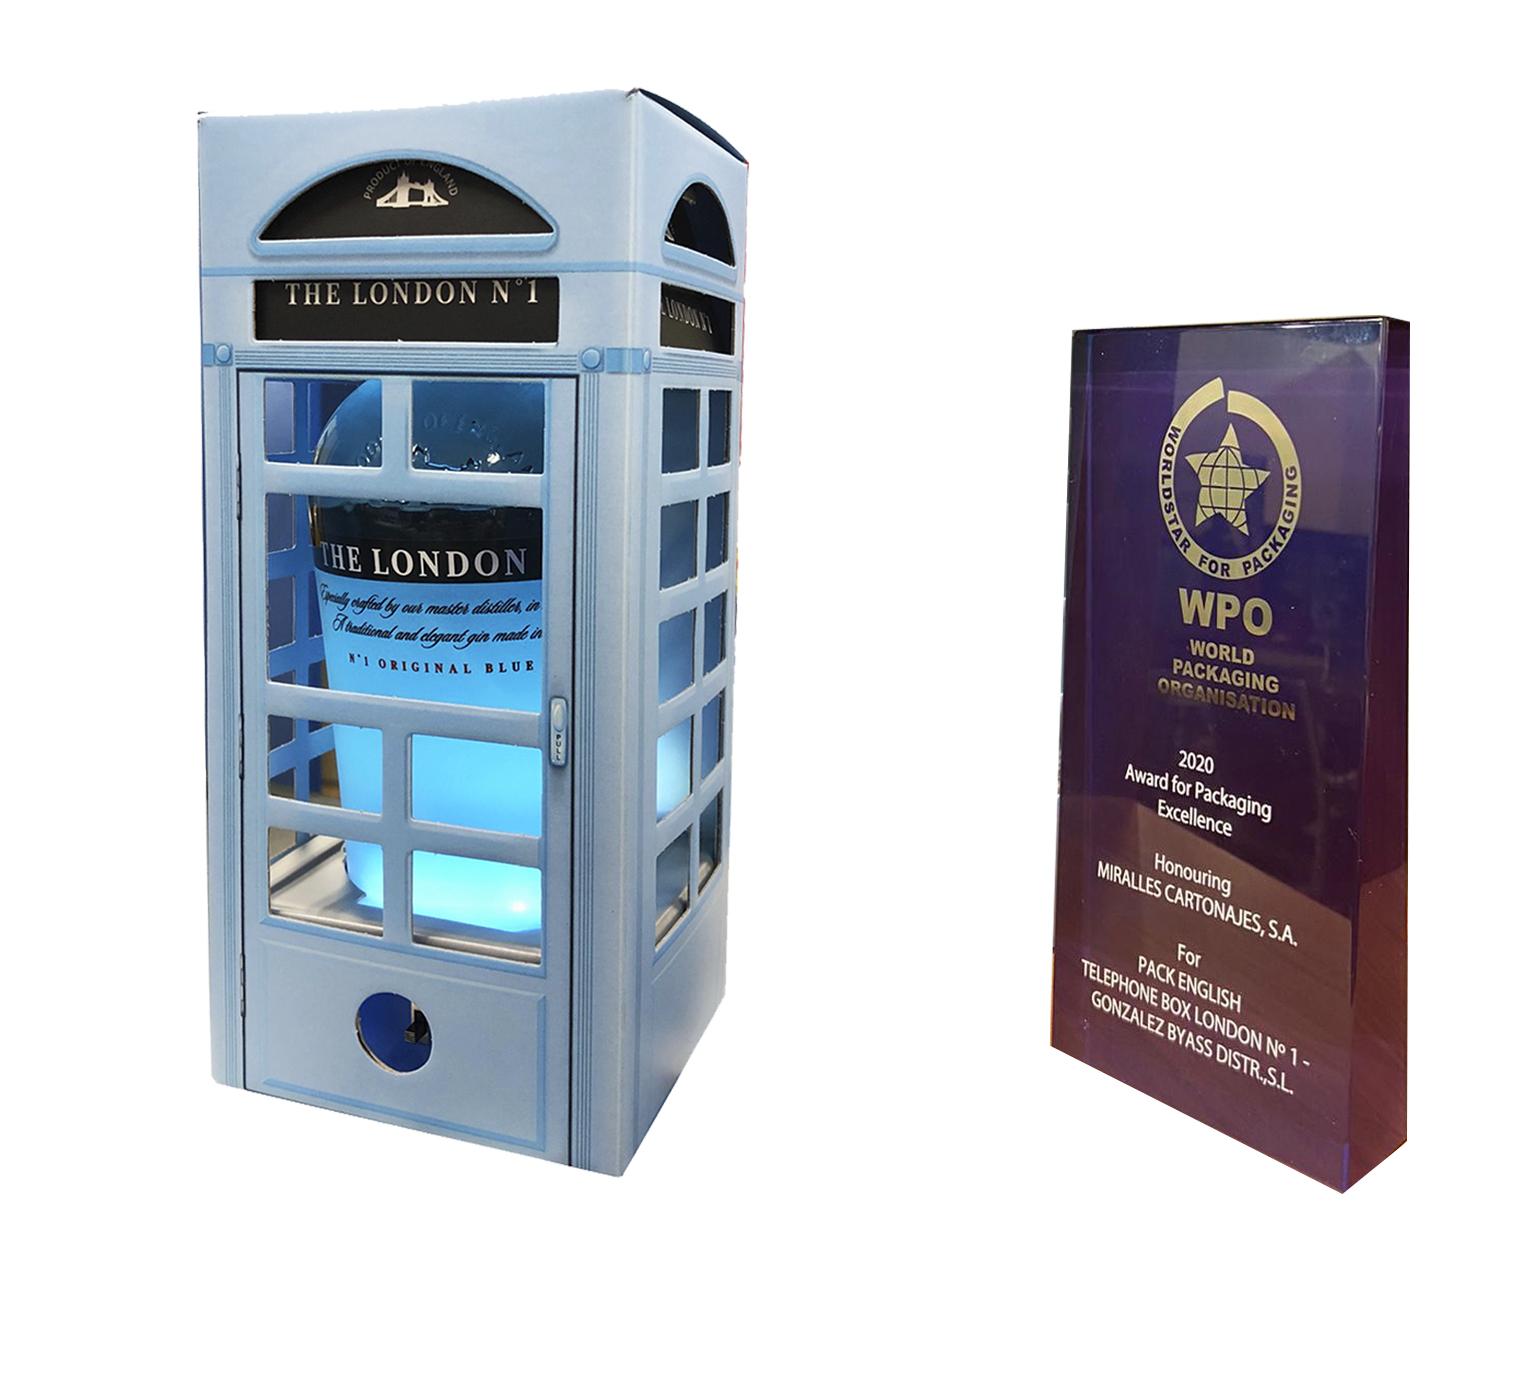 Award for packaging exellence